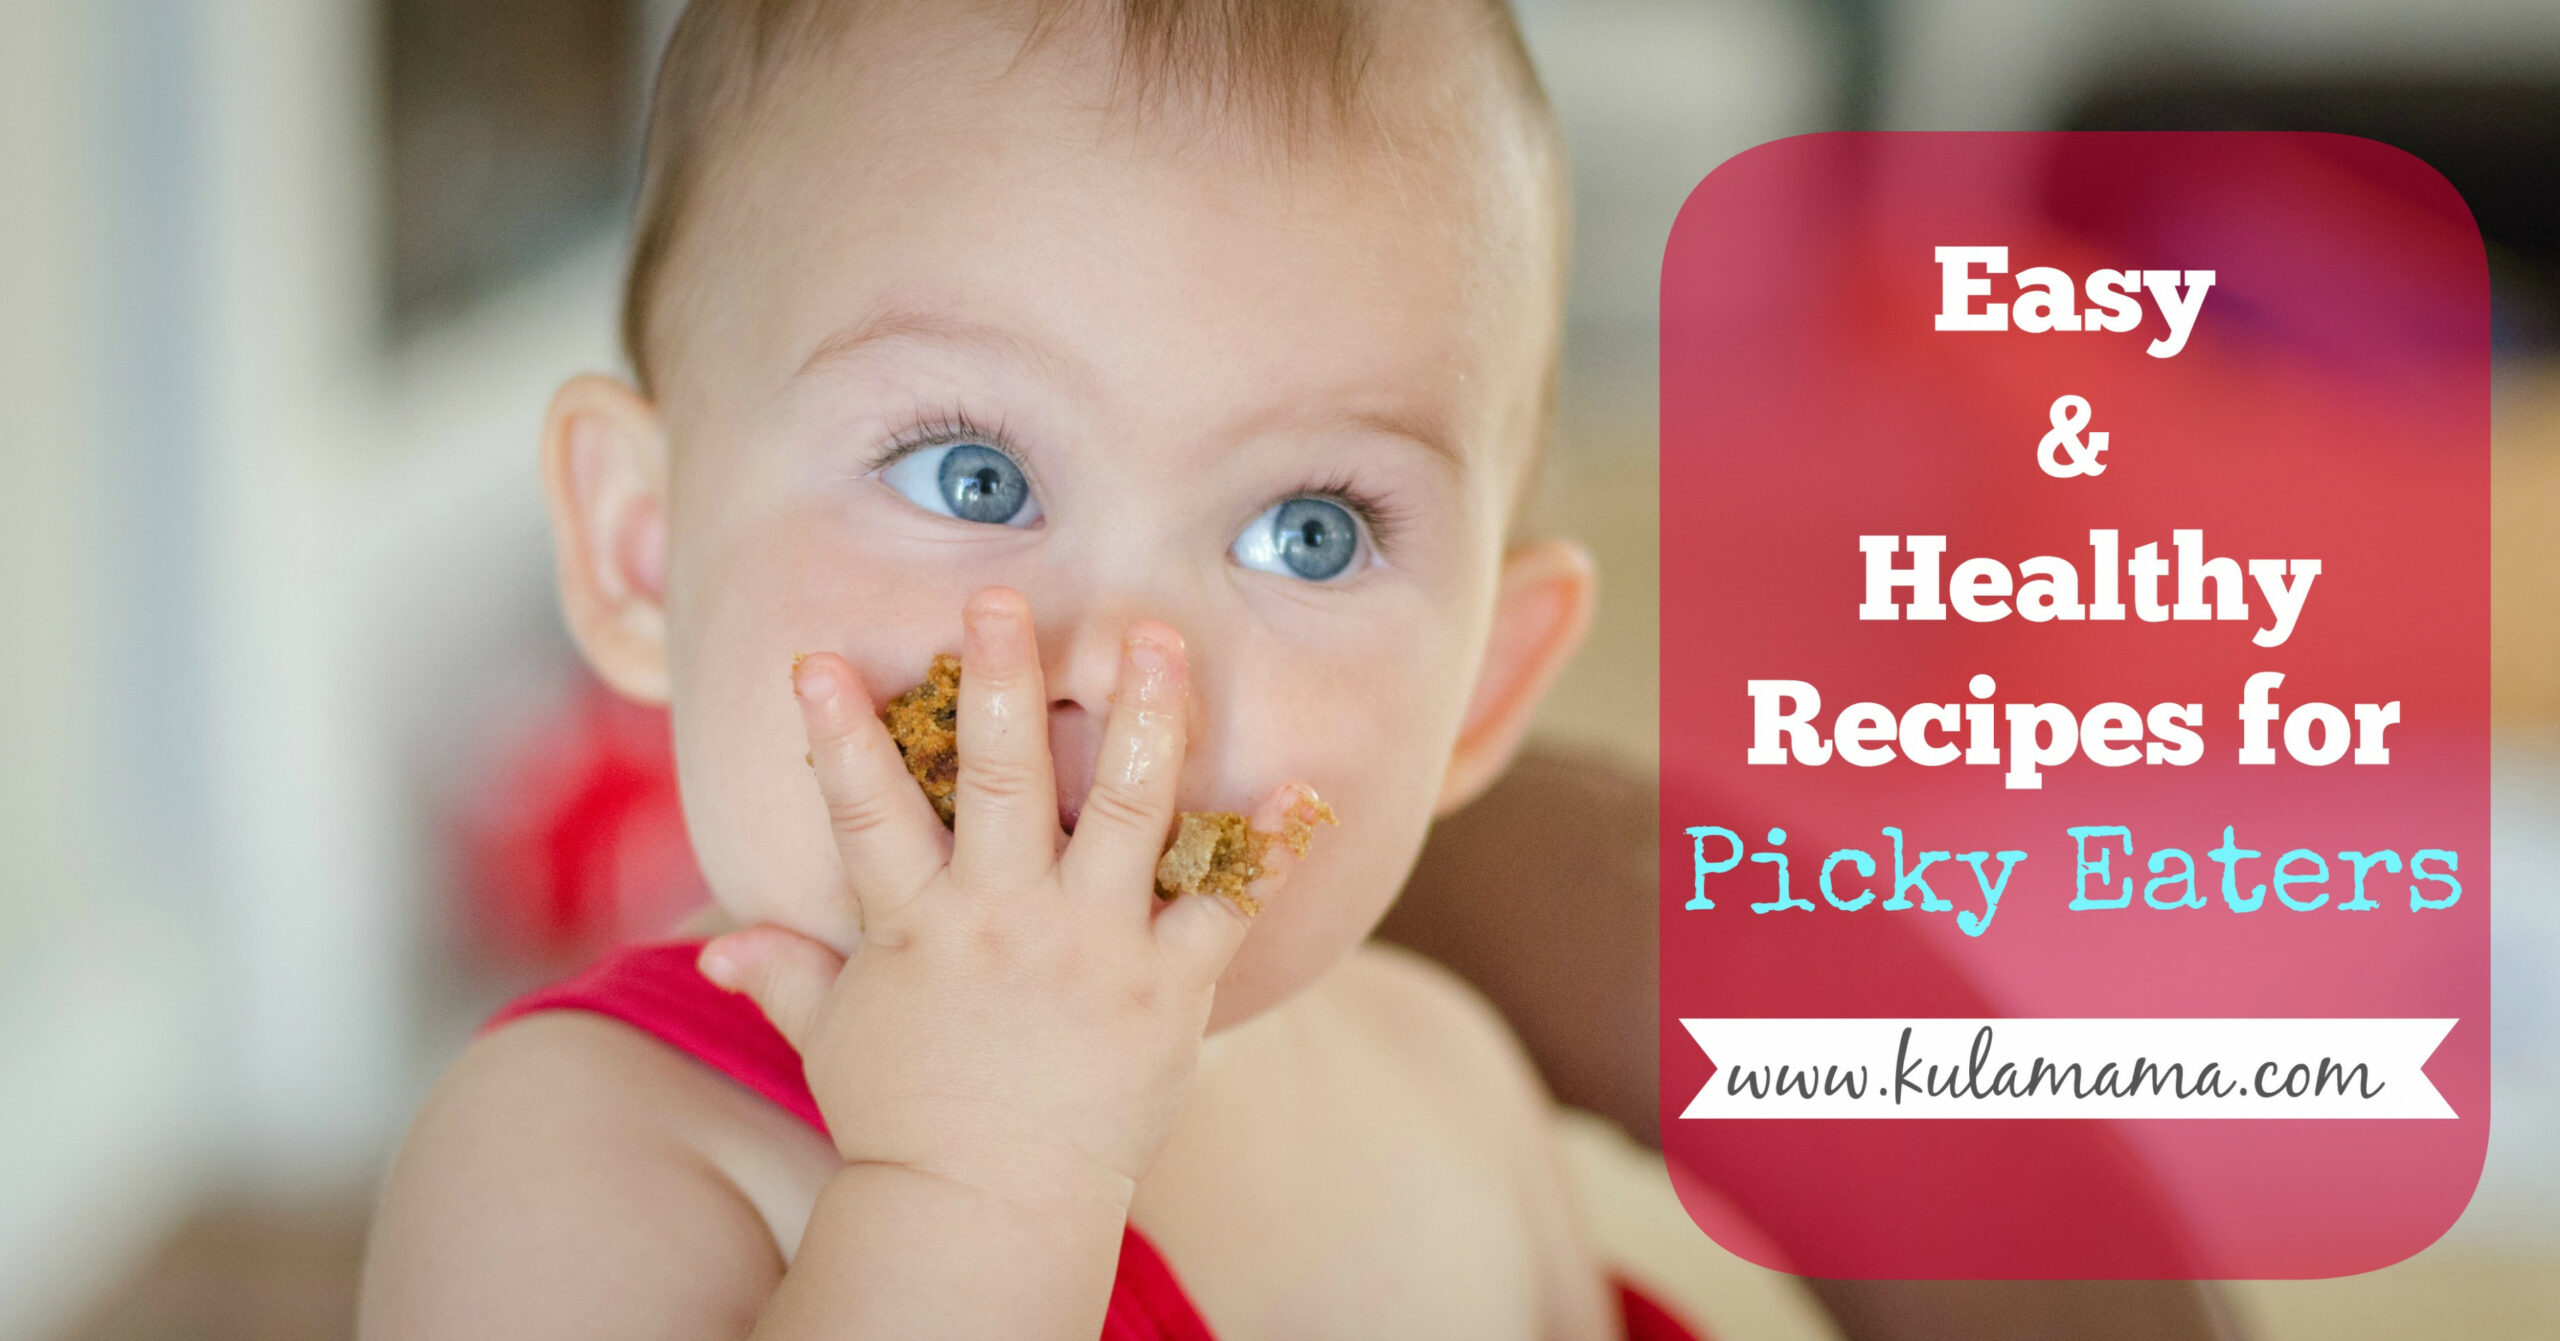 recipes for picky eaters - healthy recipes picky eaters